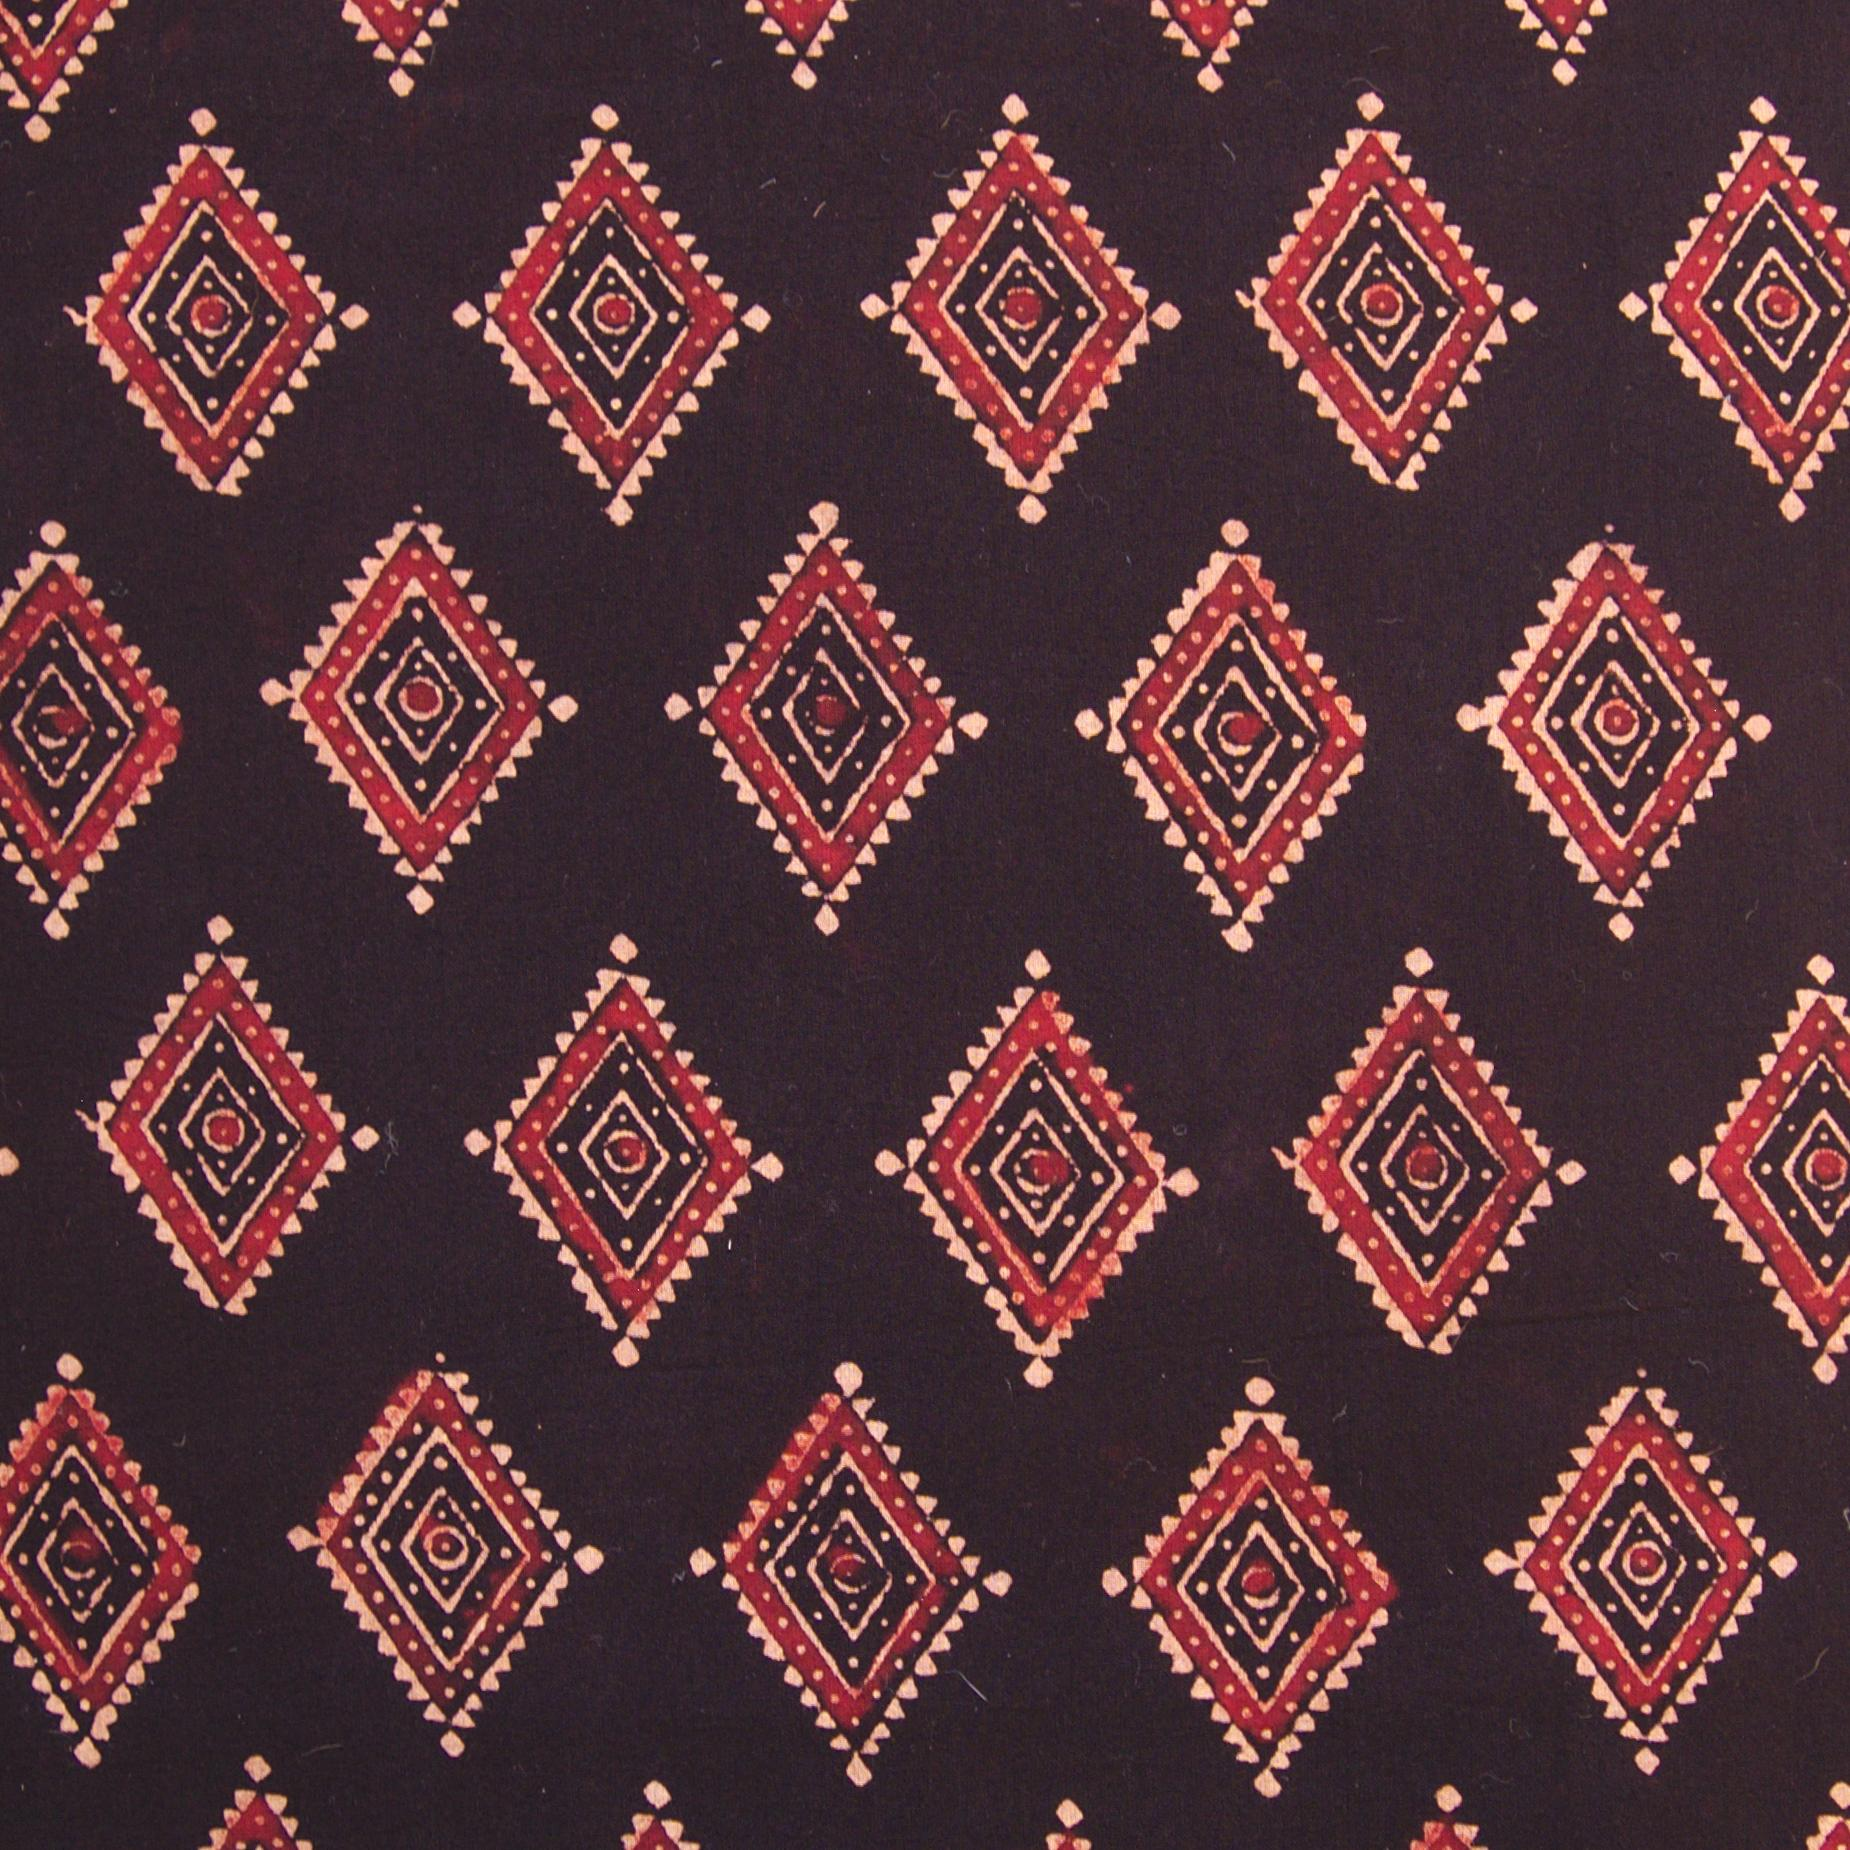 Block Printed Fabric, 100% Cotton, Ajrak Design: Black Base, Red, Beige Diamond. Close Up